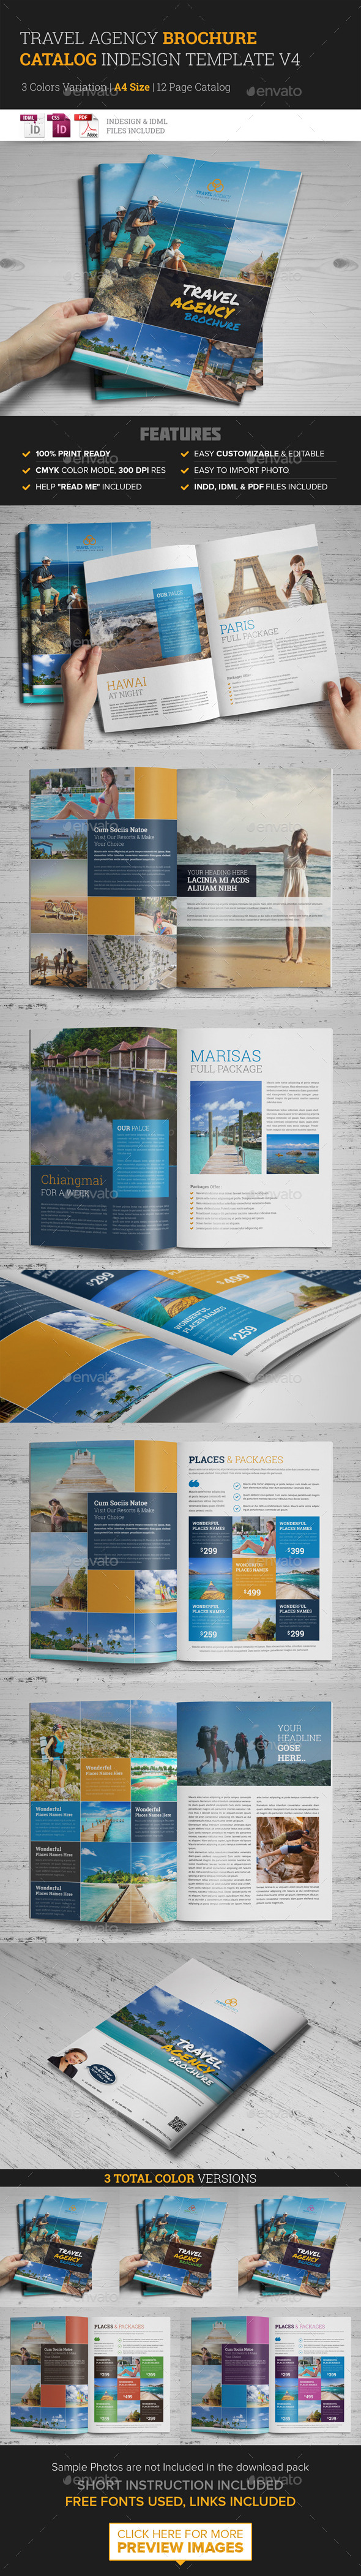 GraphicRiver Travel Agency Brochure Catalog InDesign Template v 10398276